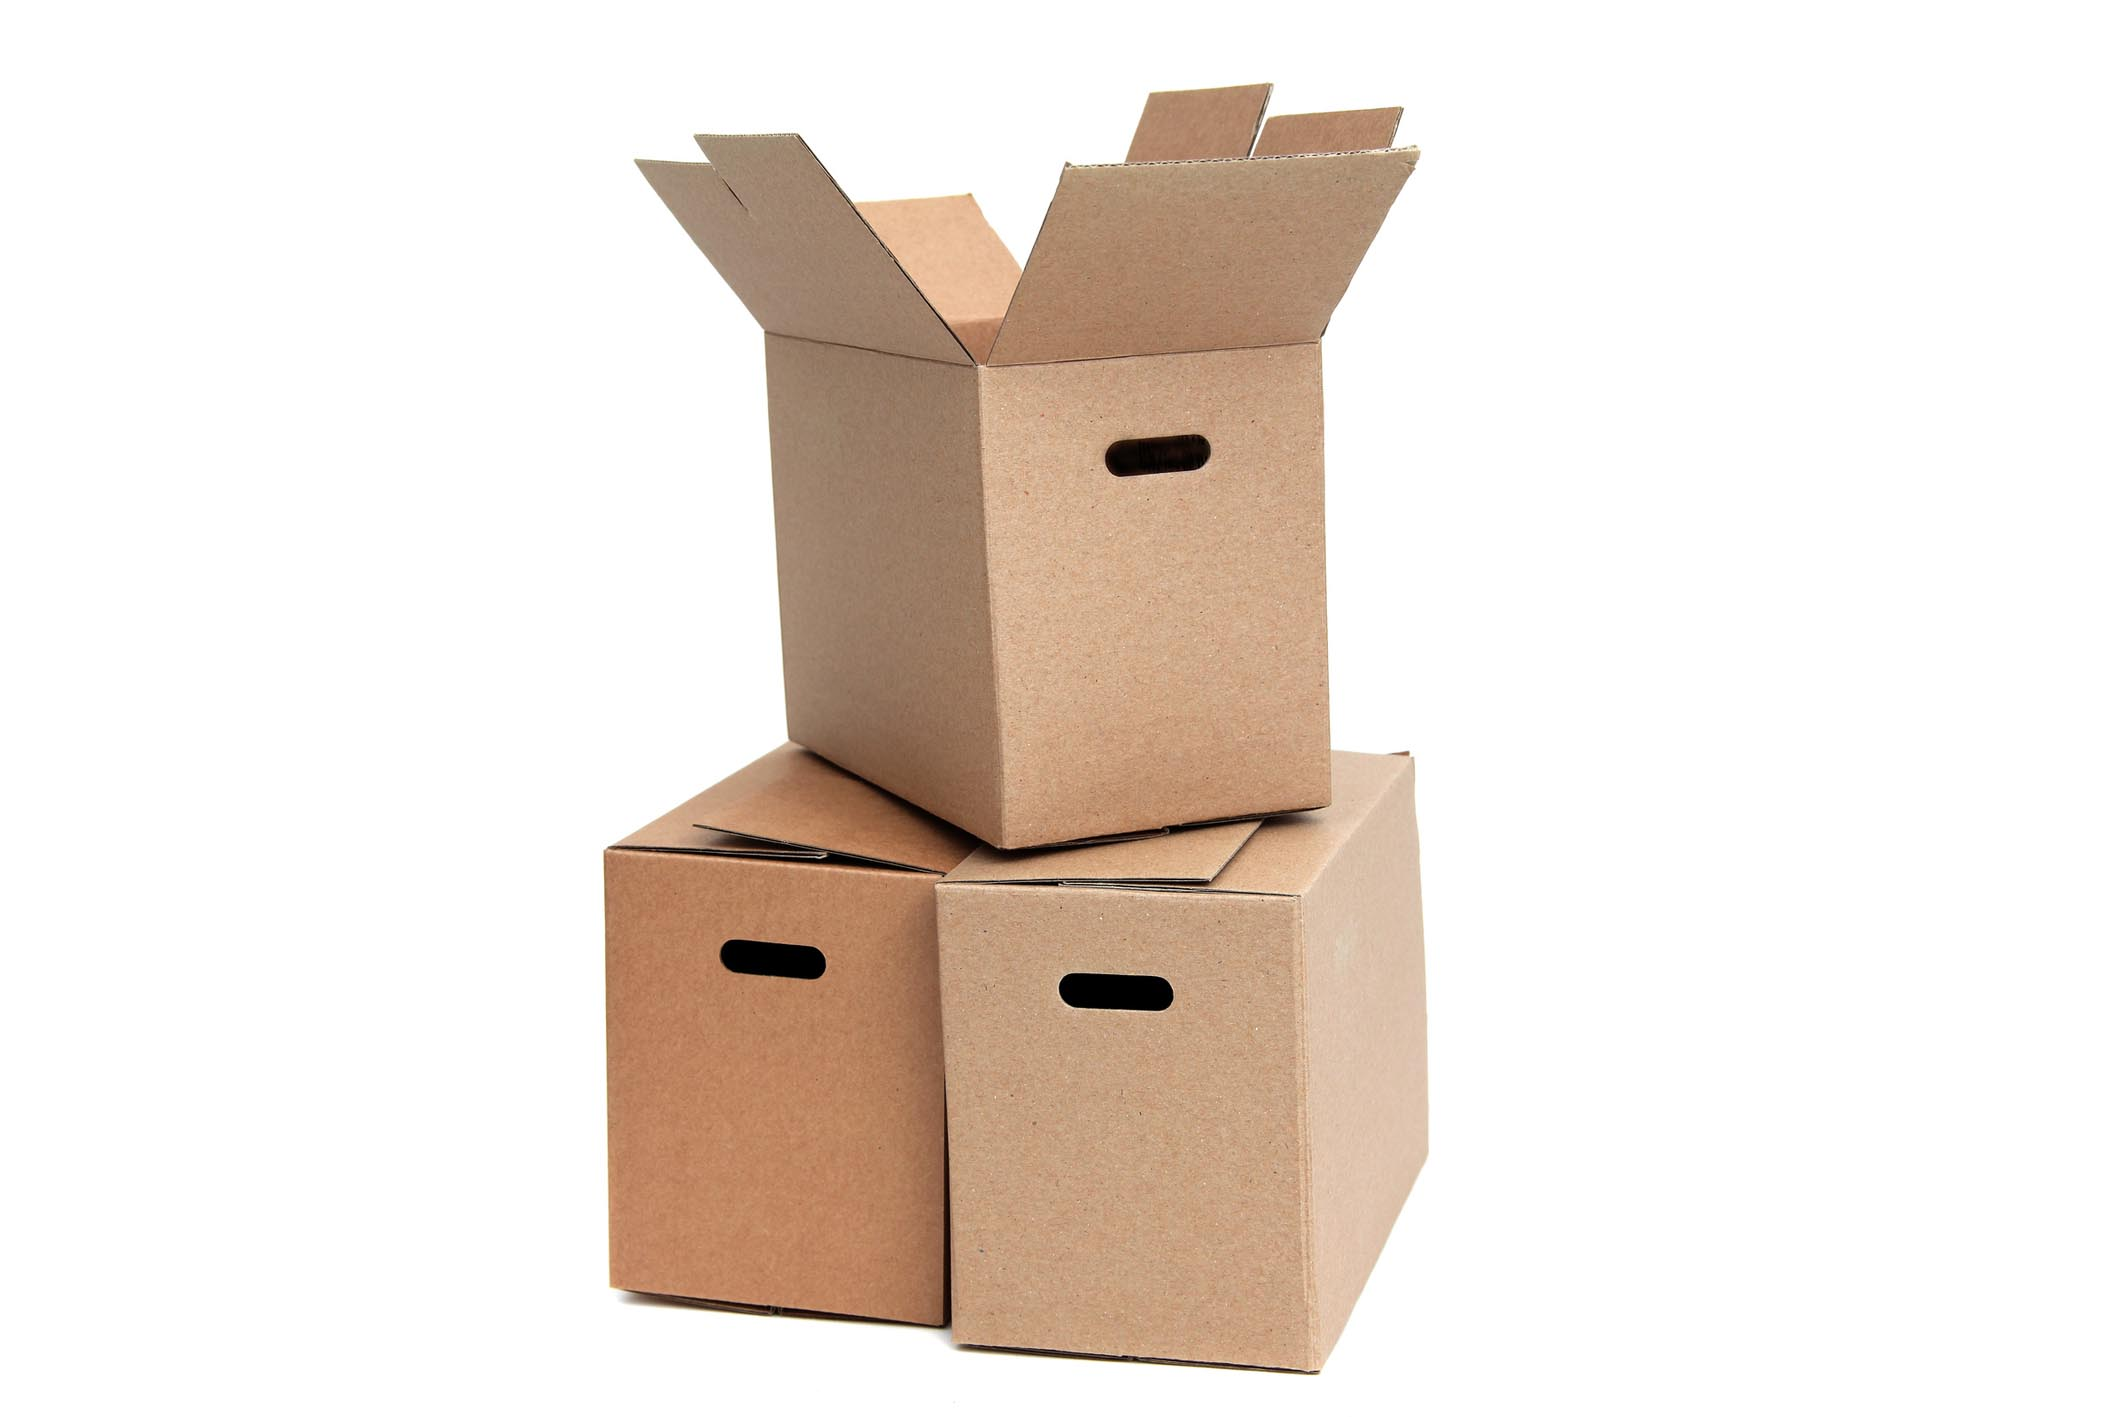 office depot recycling recycling depot town of edson home depot kitchen garbage cans. Black Bedroom Furniture Sets. Home Design Ideas